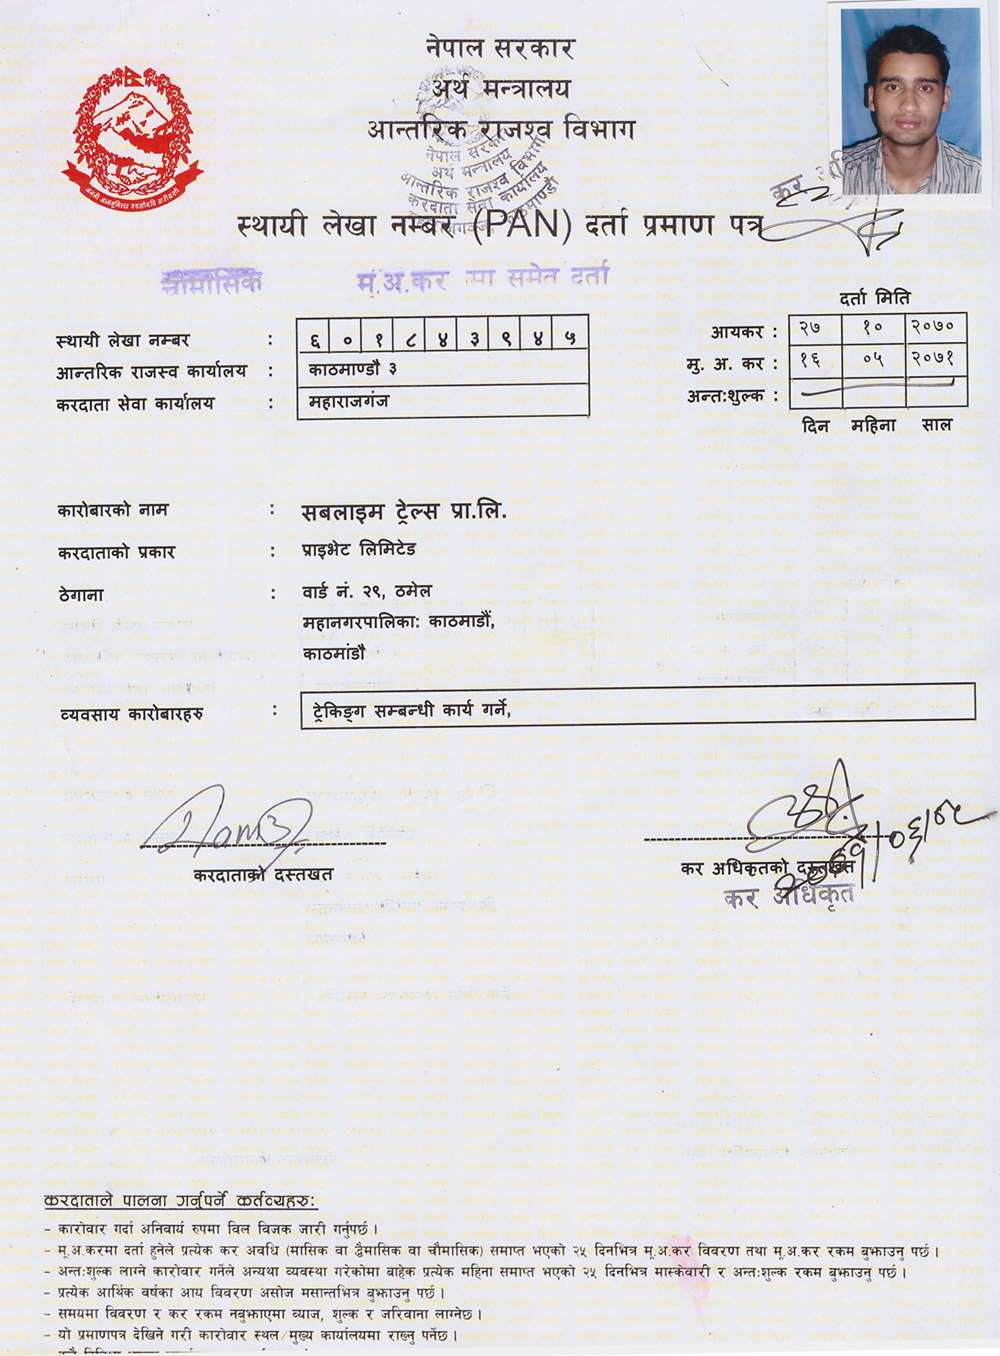 Certificate Of Permanent Account Number From Tax Division